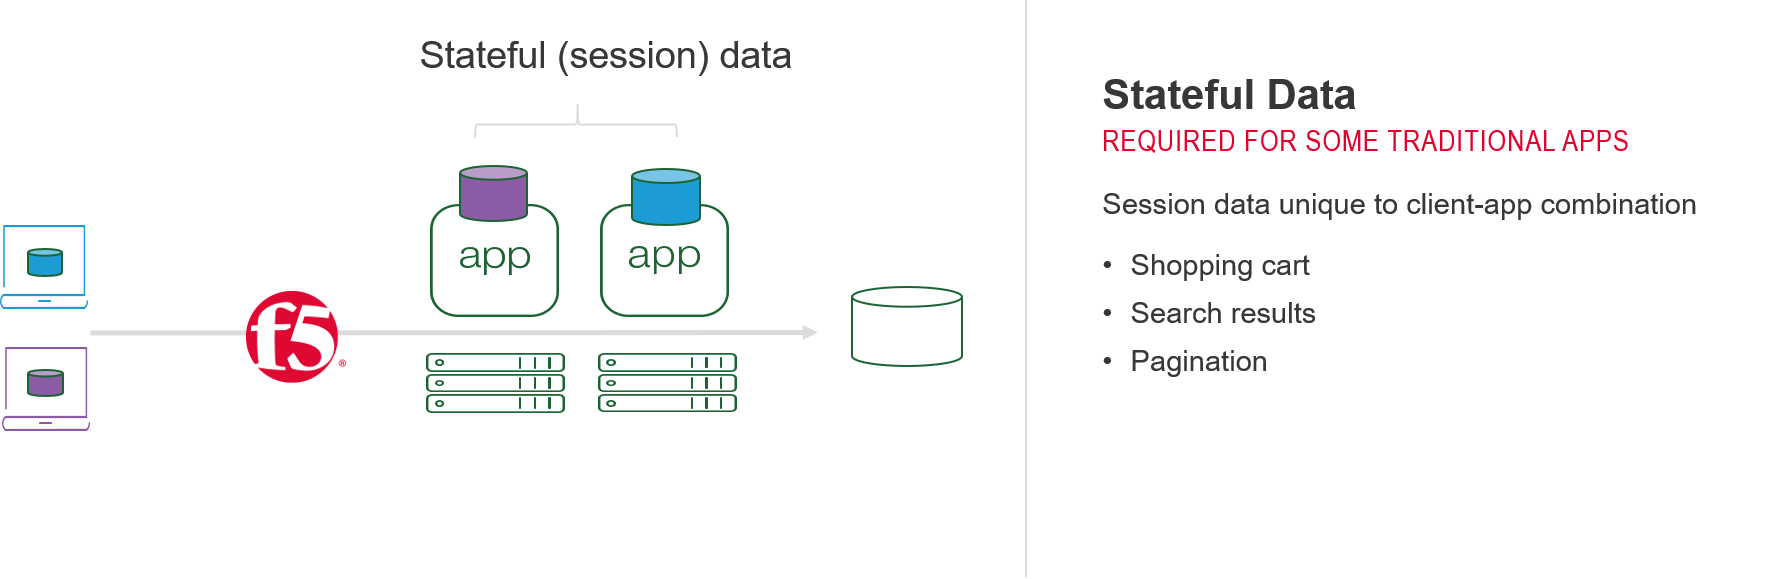 Stateful sessions data